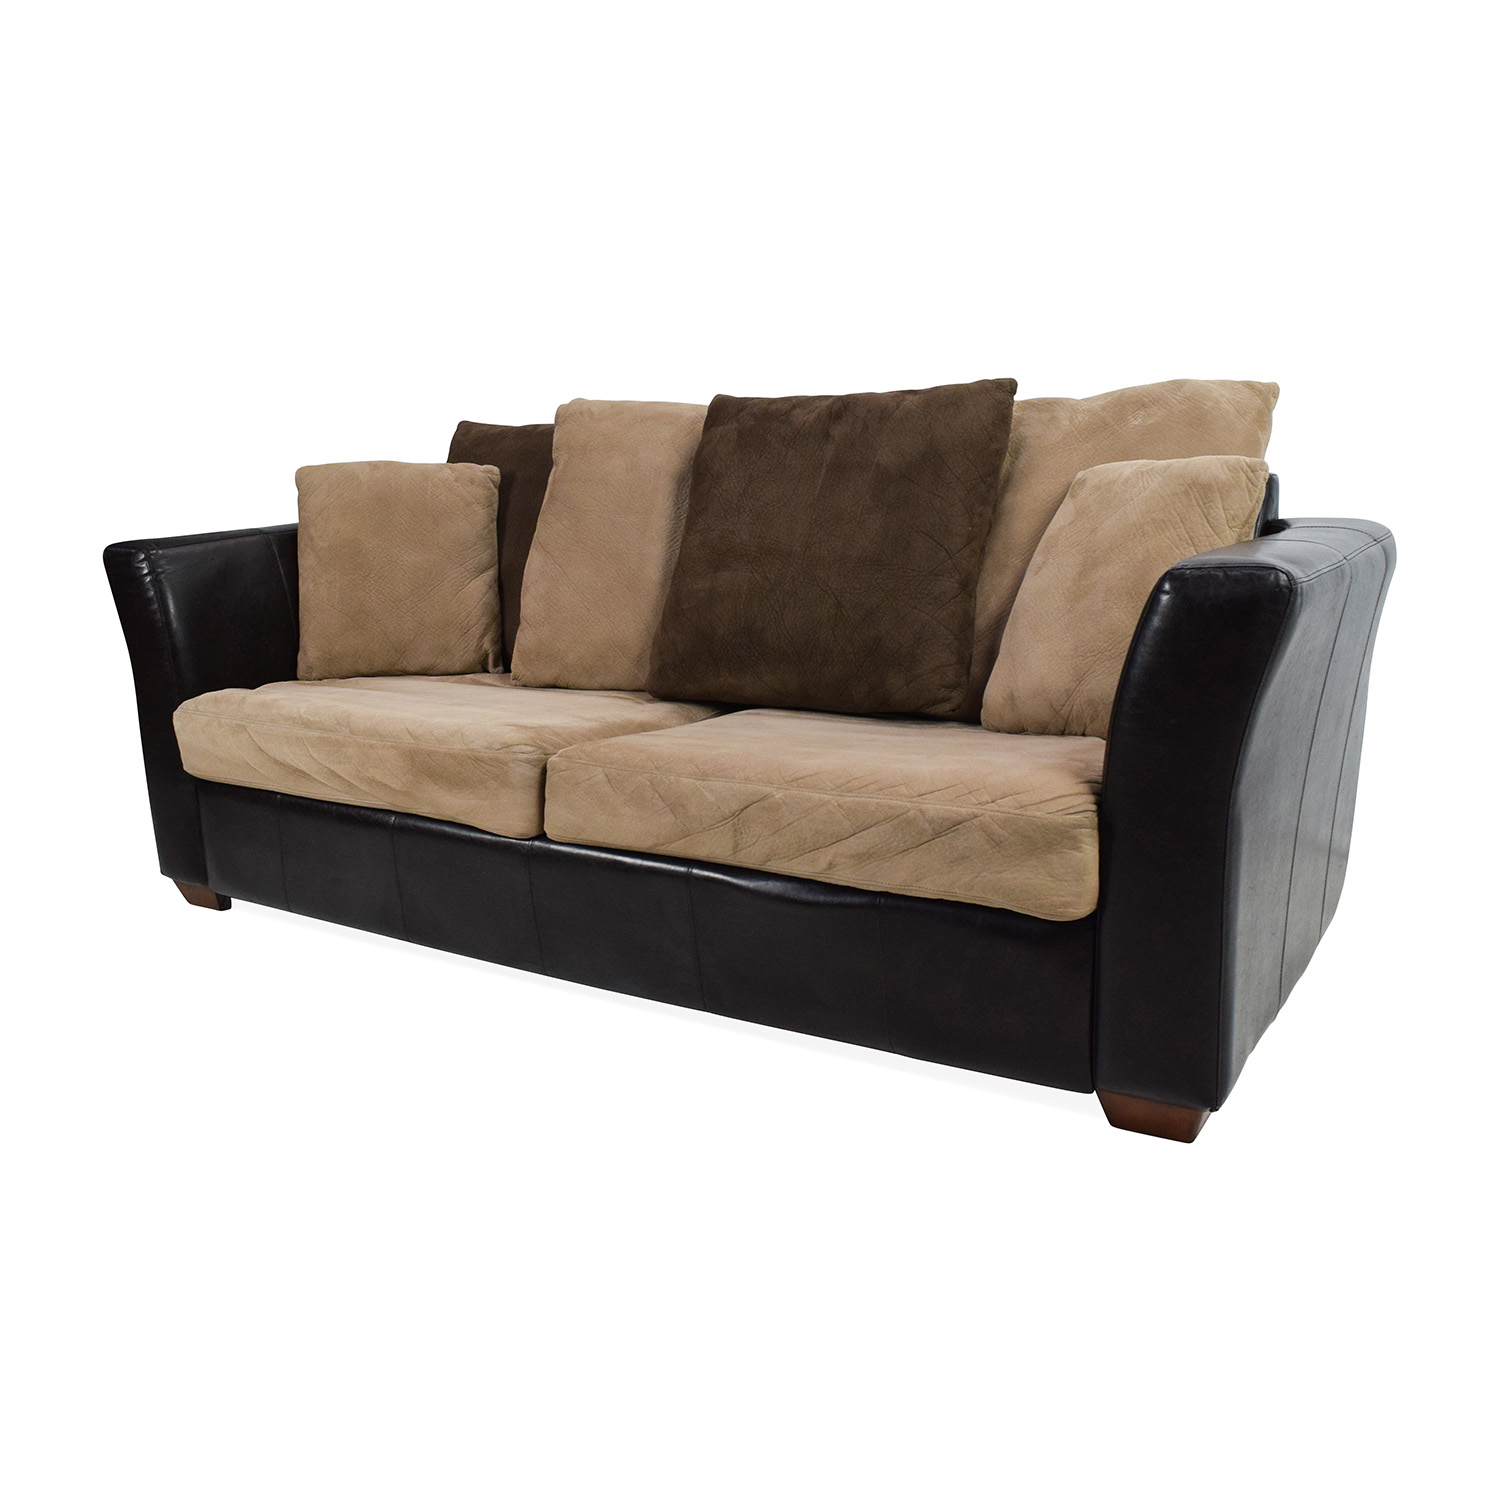 Jennifer Convertibles Sleeper Sofa Best